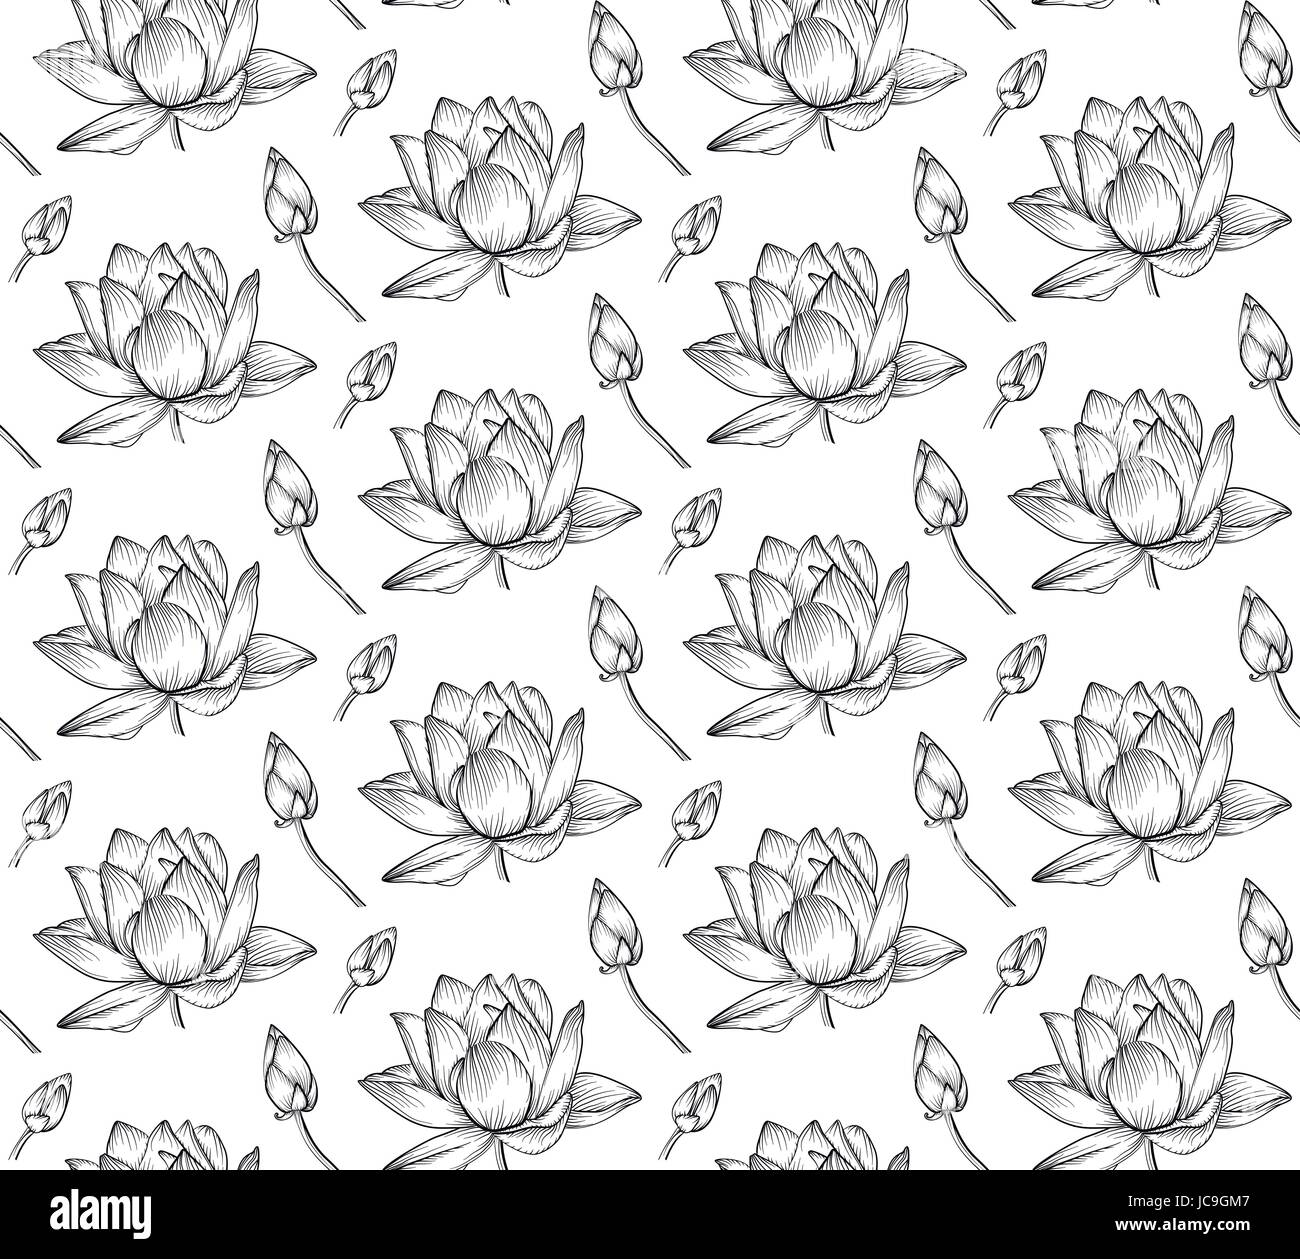 lotus flower drawing isolated icon stockfotos lotus. Black Bedroom Furniture Sets. Home Design Ideas